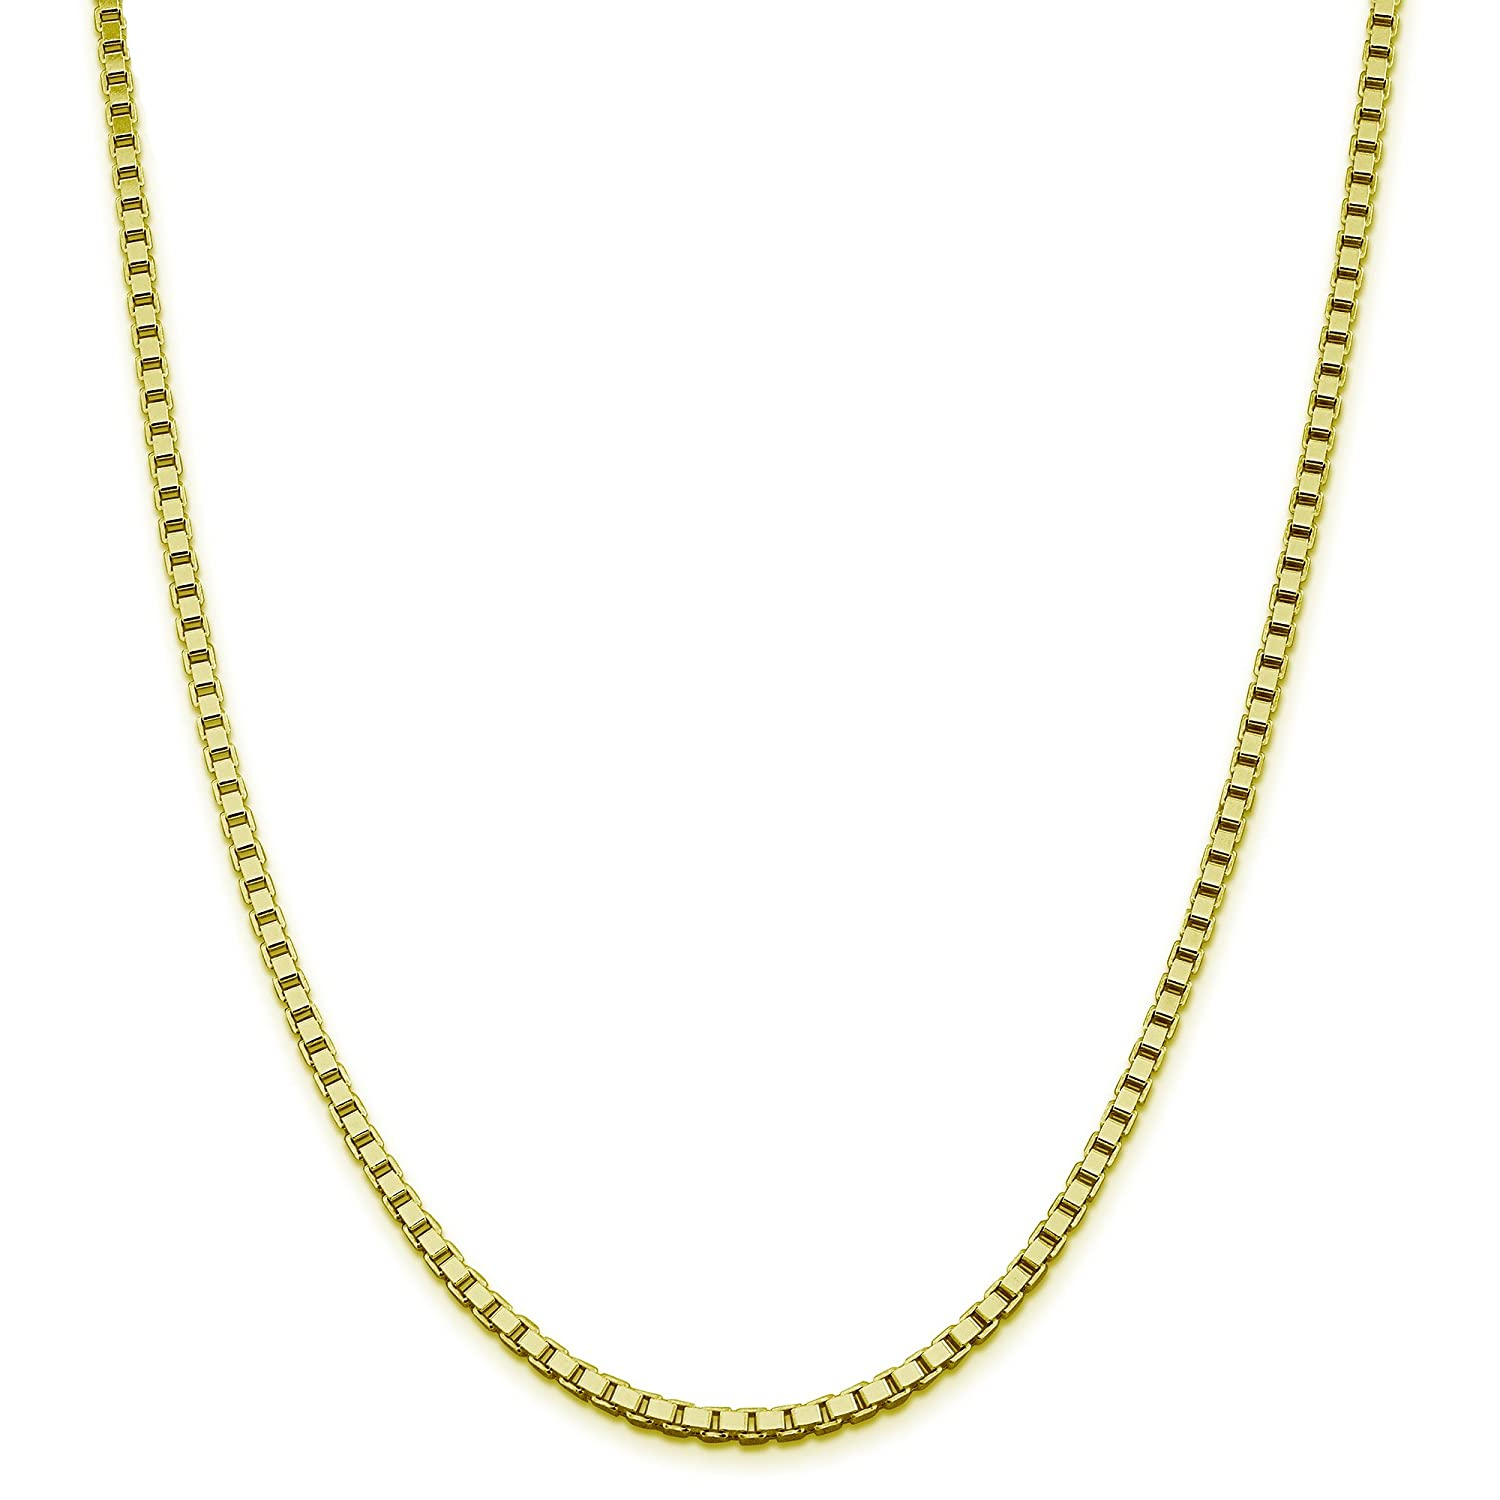 925 Sterling Silver 1.5MM Box Chain Italian Necklace Sturdy and Strong Claps-16-30